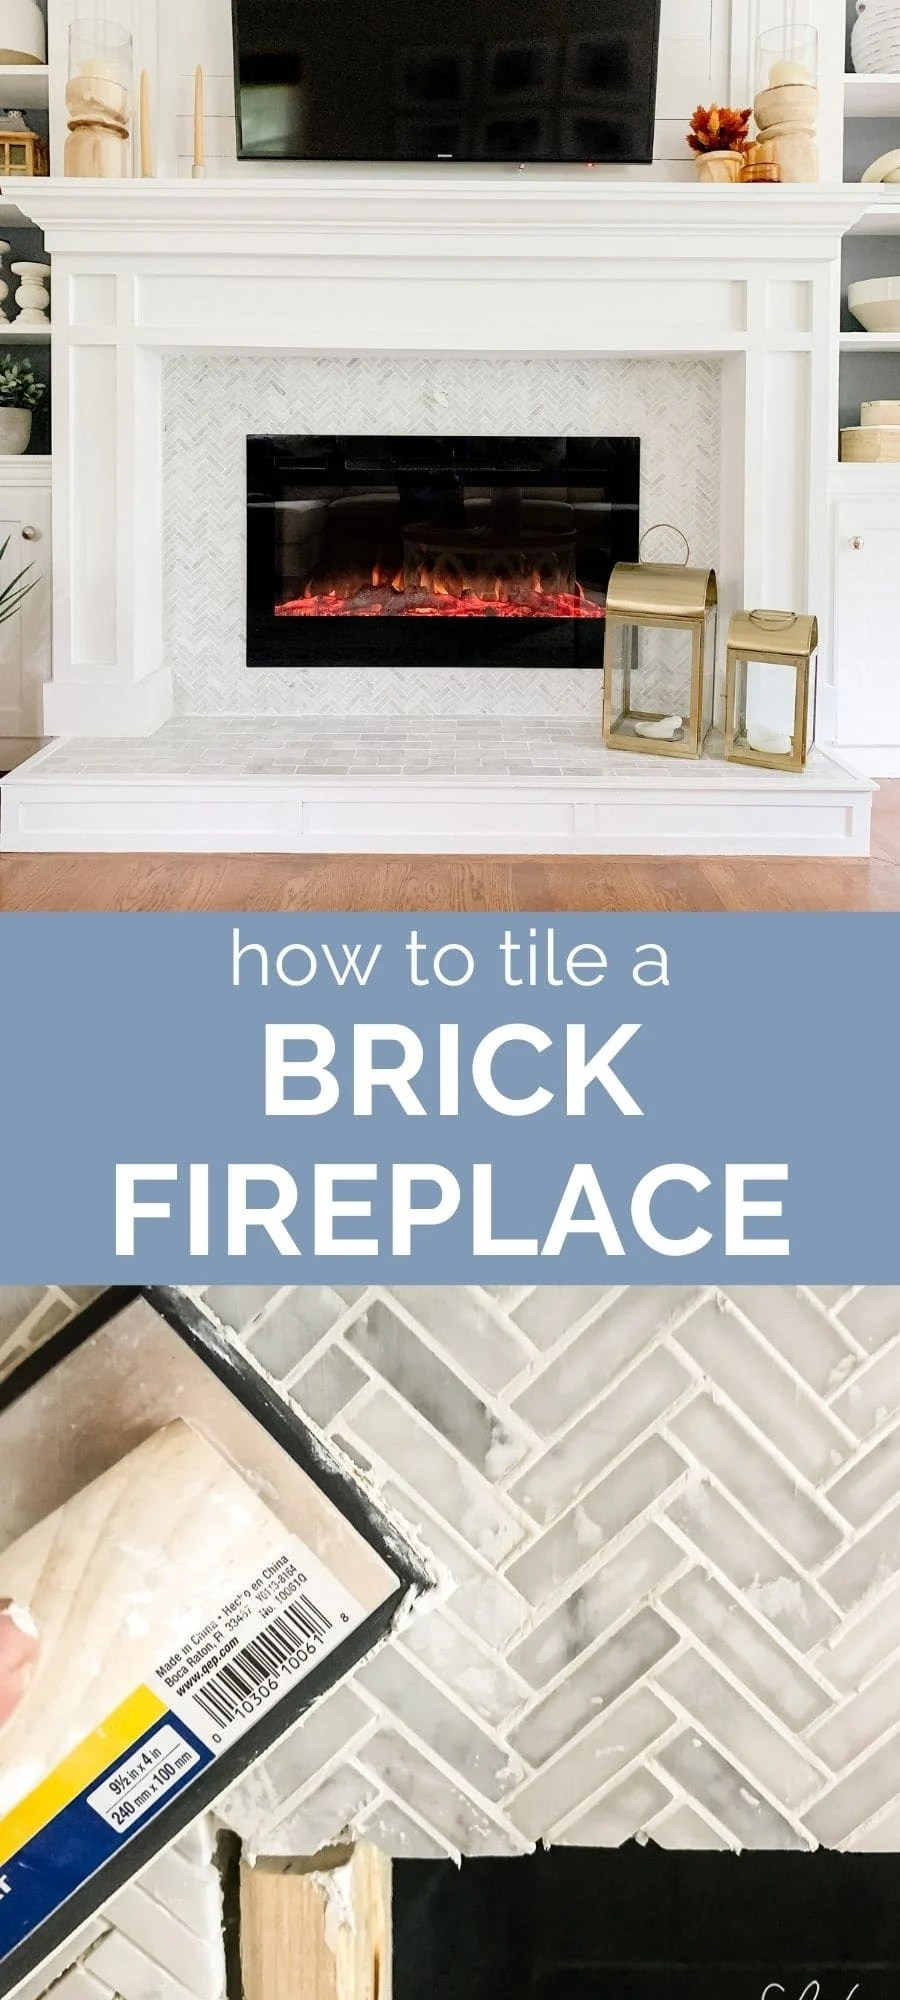 How To Tile A Brick Fireplace Jenna, How To Reface A Brick Fireplace With Tile